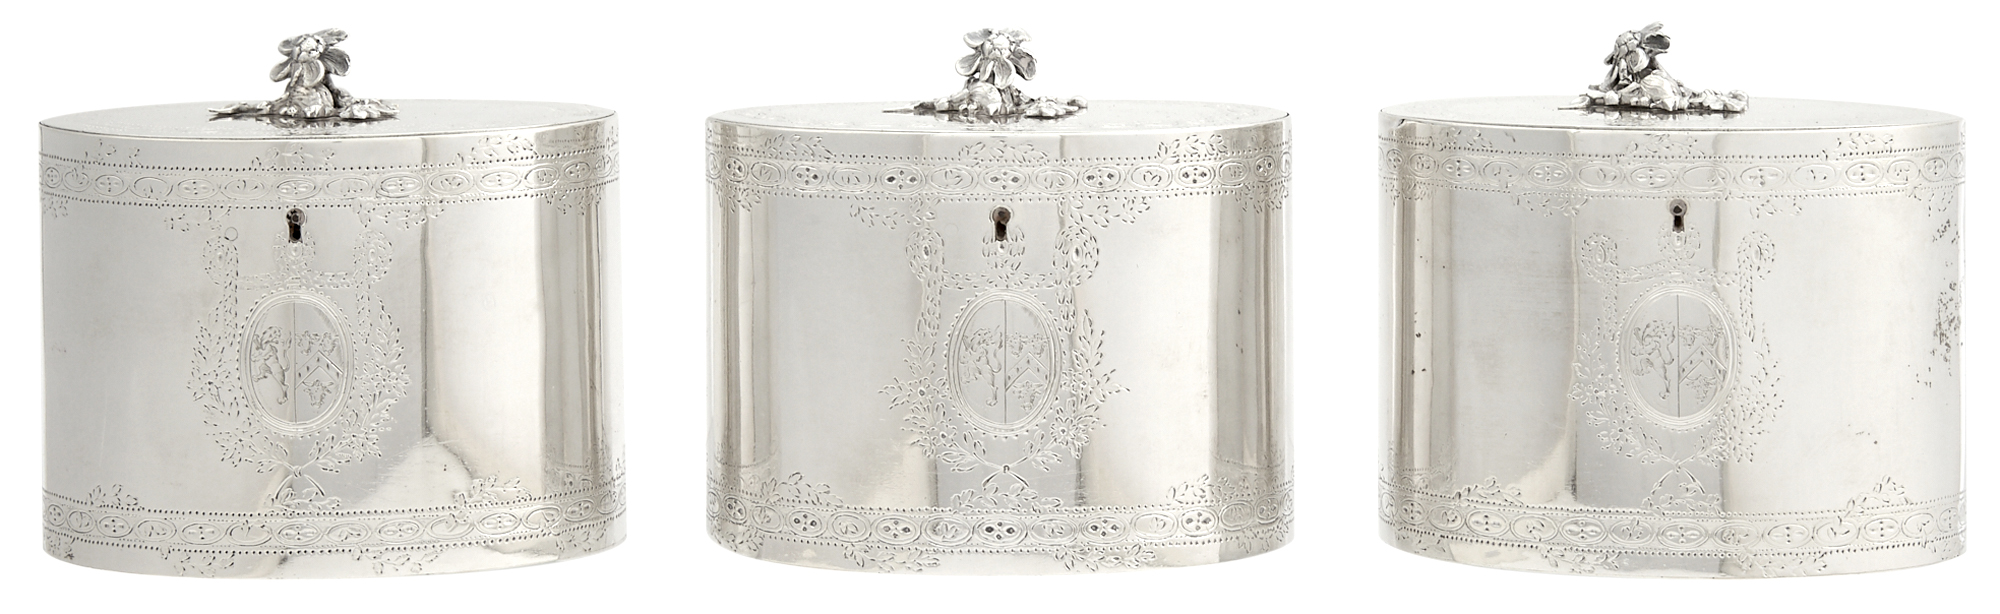 Lot image - Set of Three George III Sterling Silver Tea Caddies in Fitted Burlwood and Satinwood Case